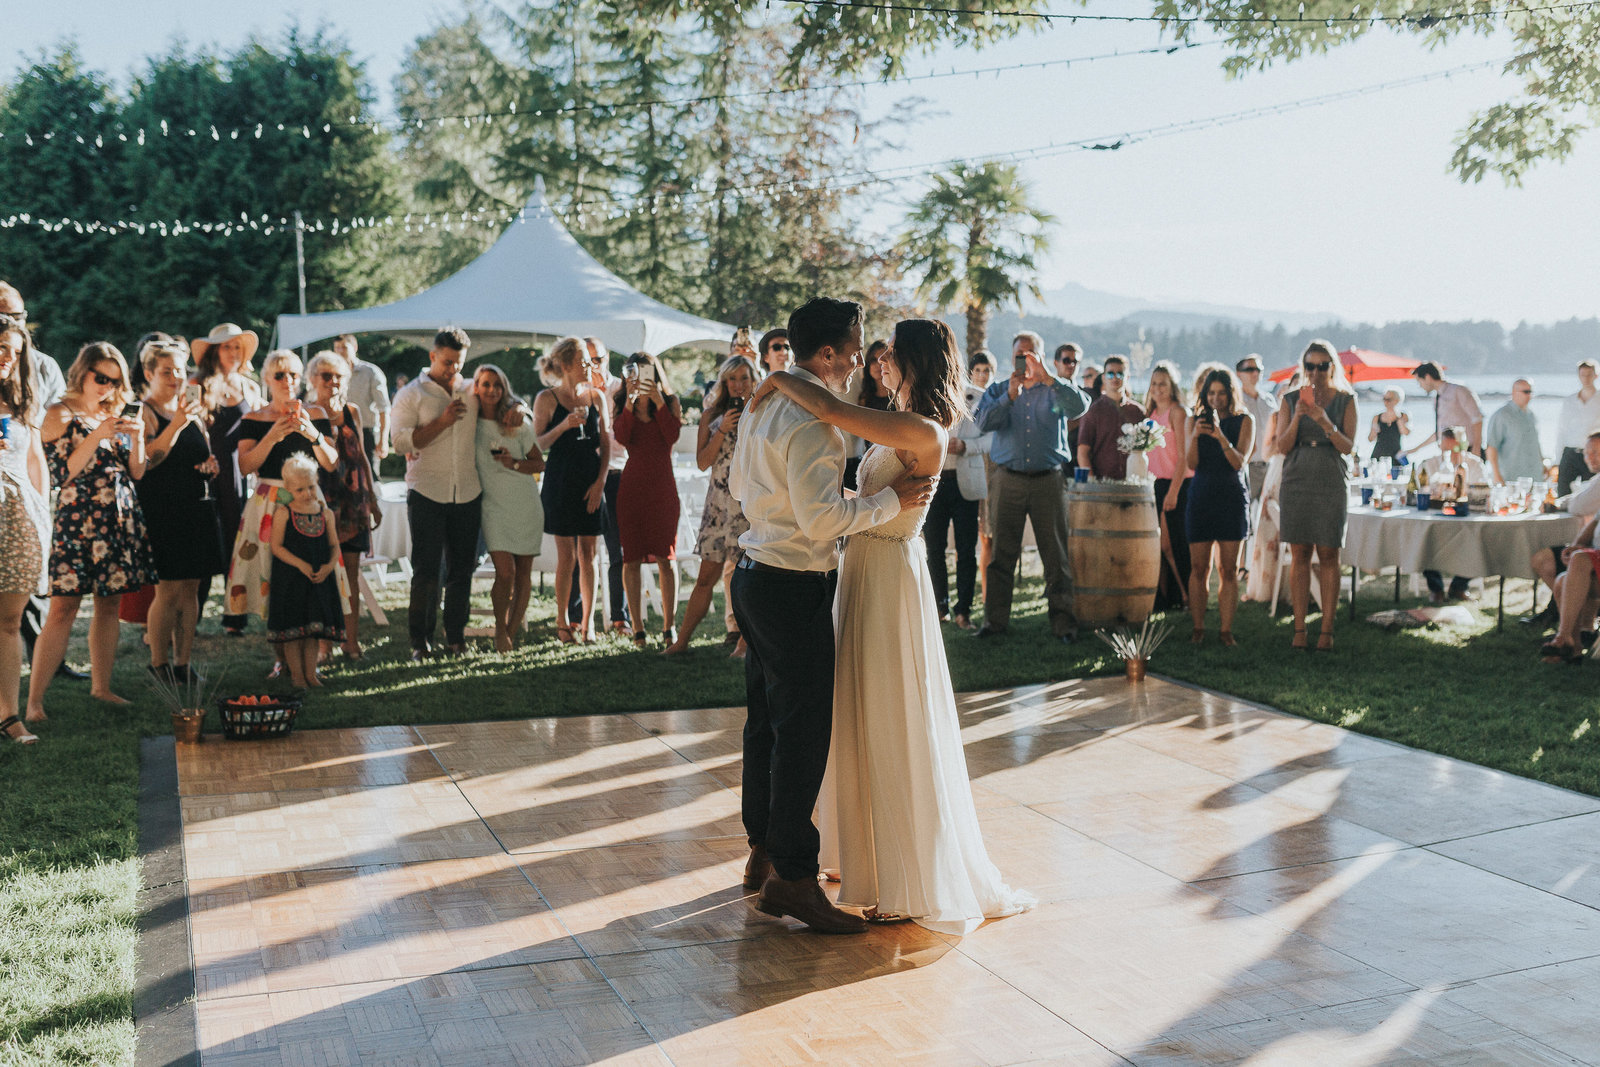 Bride and groom sharing first dance at intimate Vancouver Island wedding